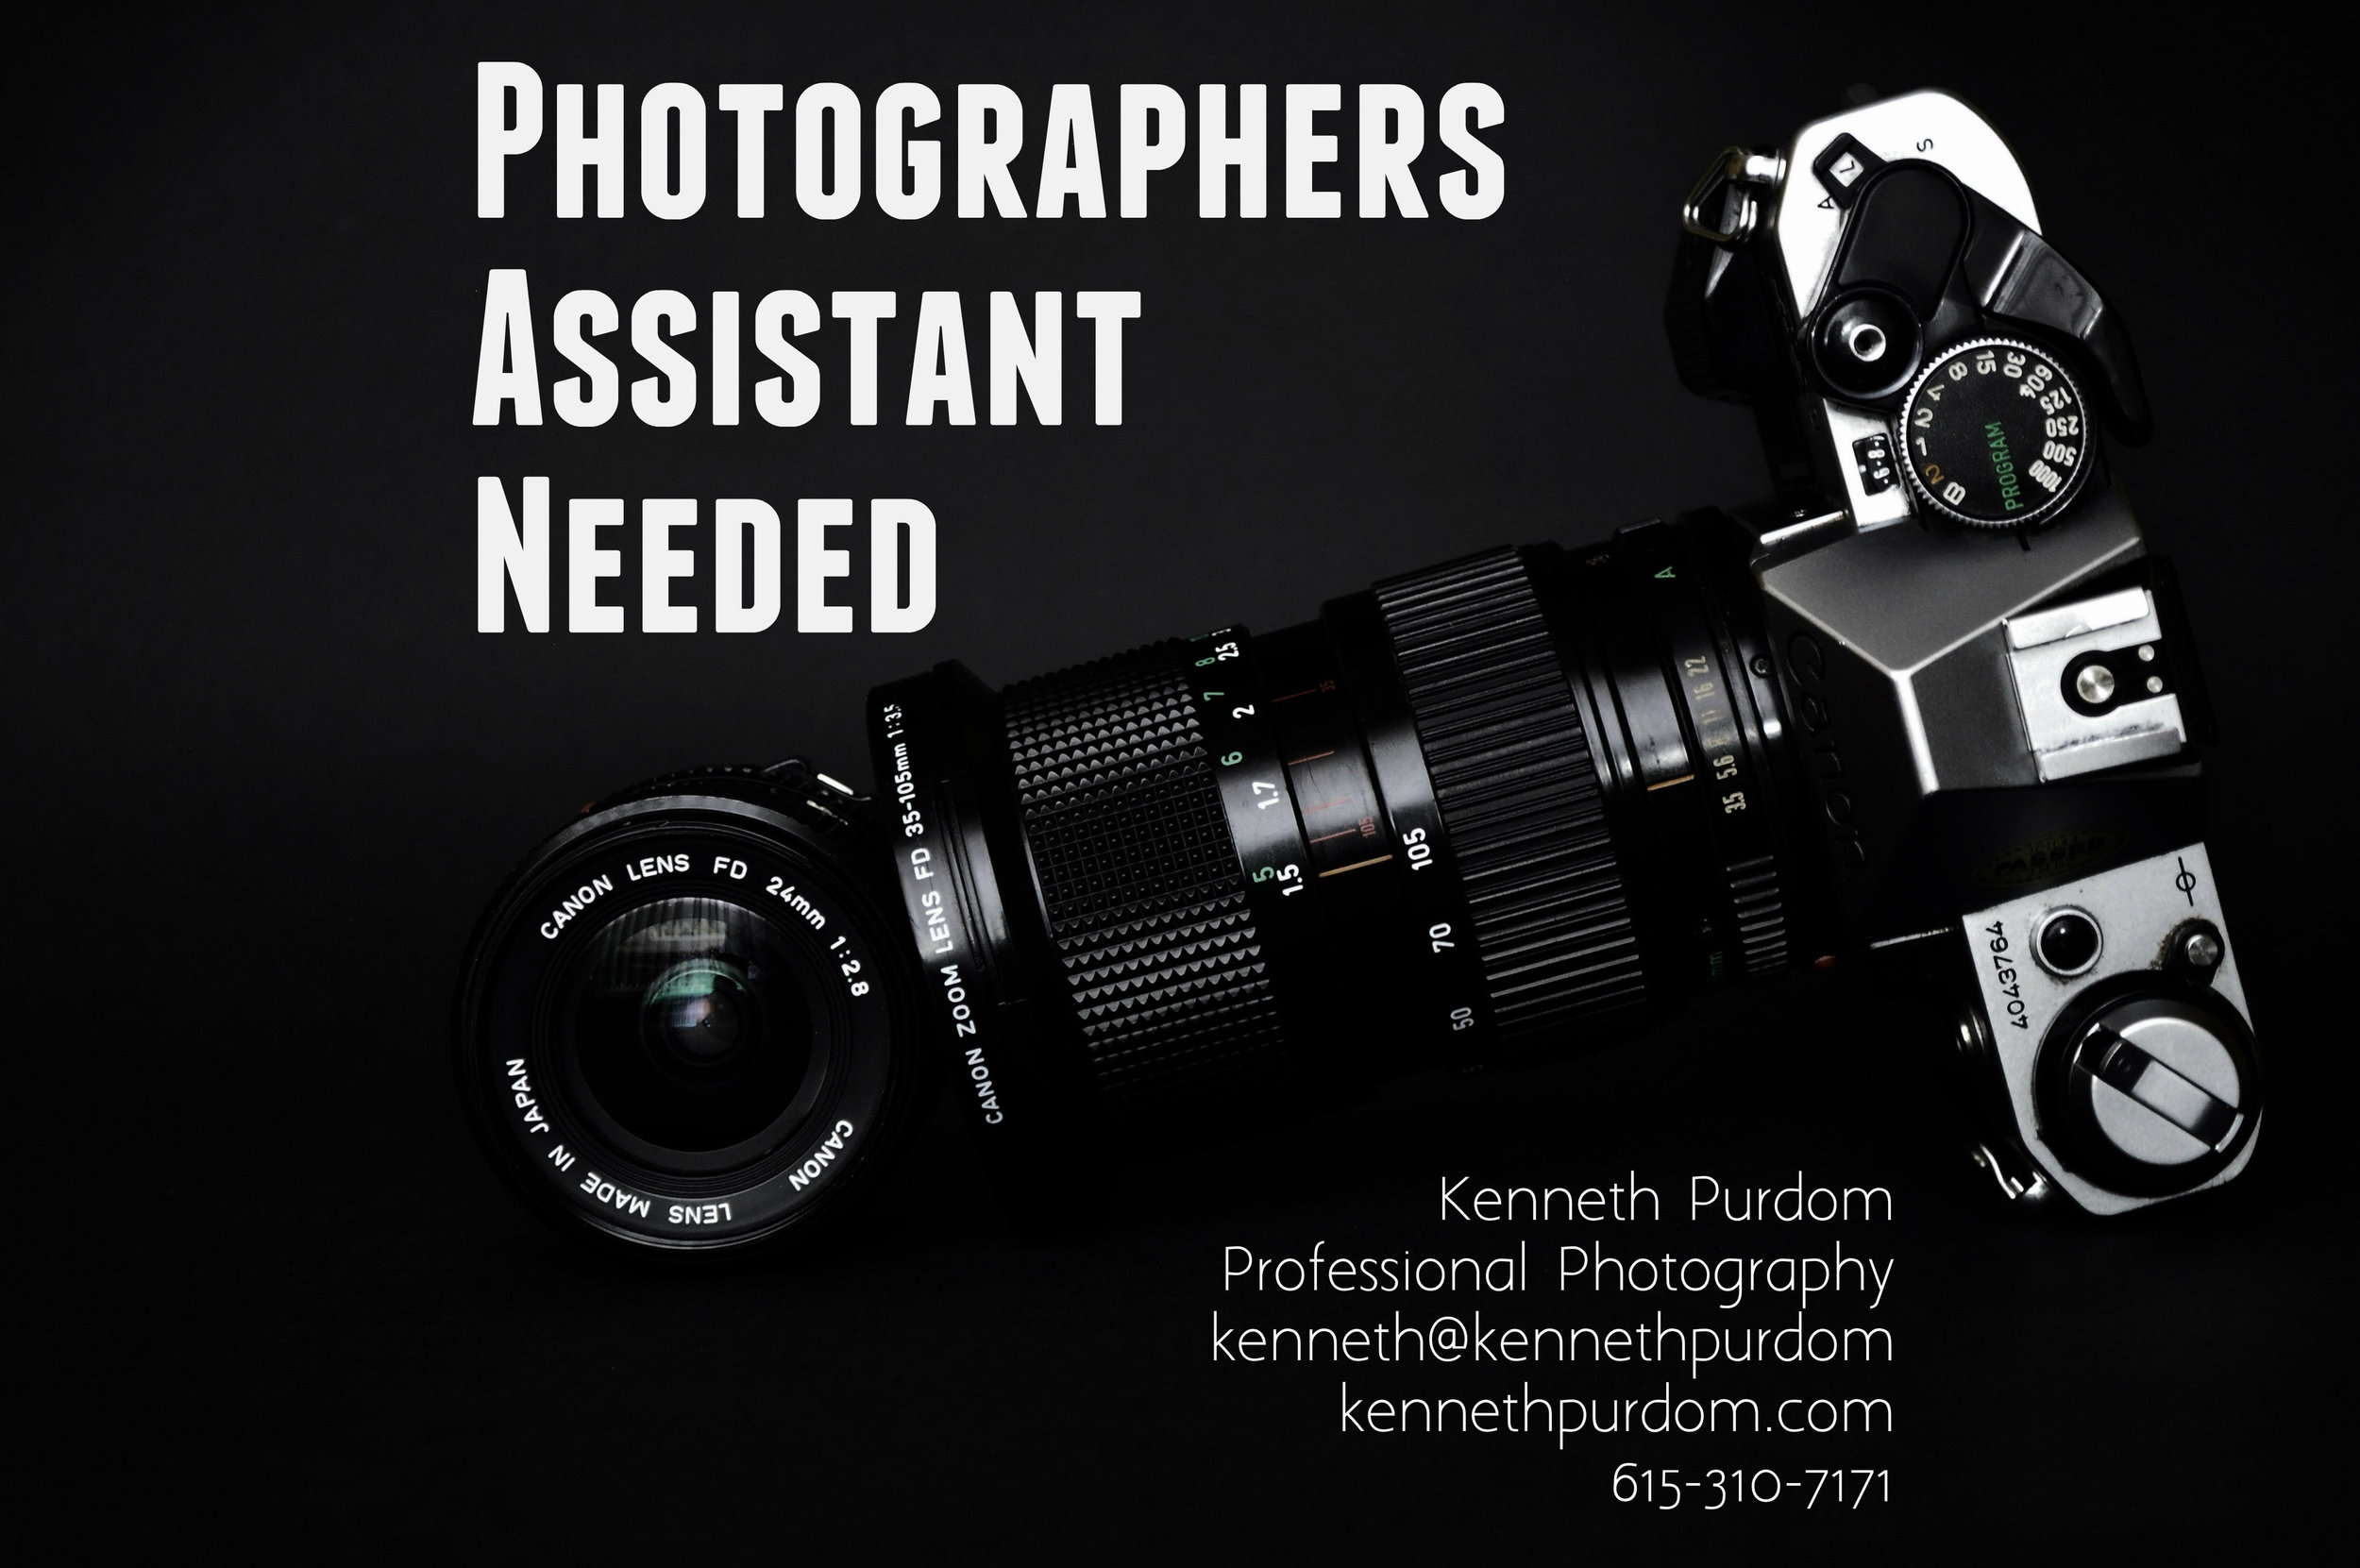 Assistant Photographer Needed